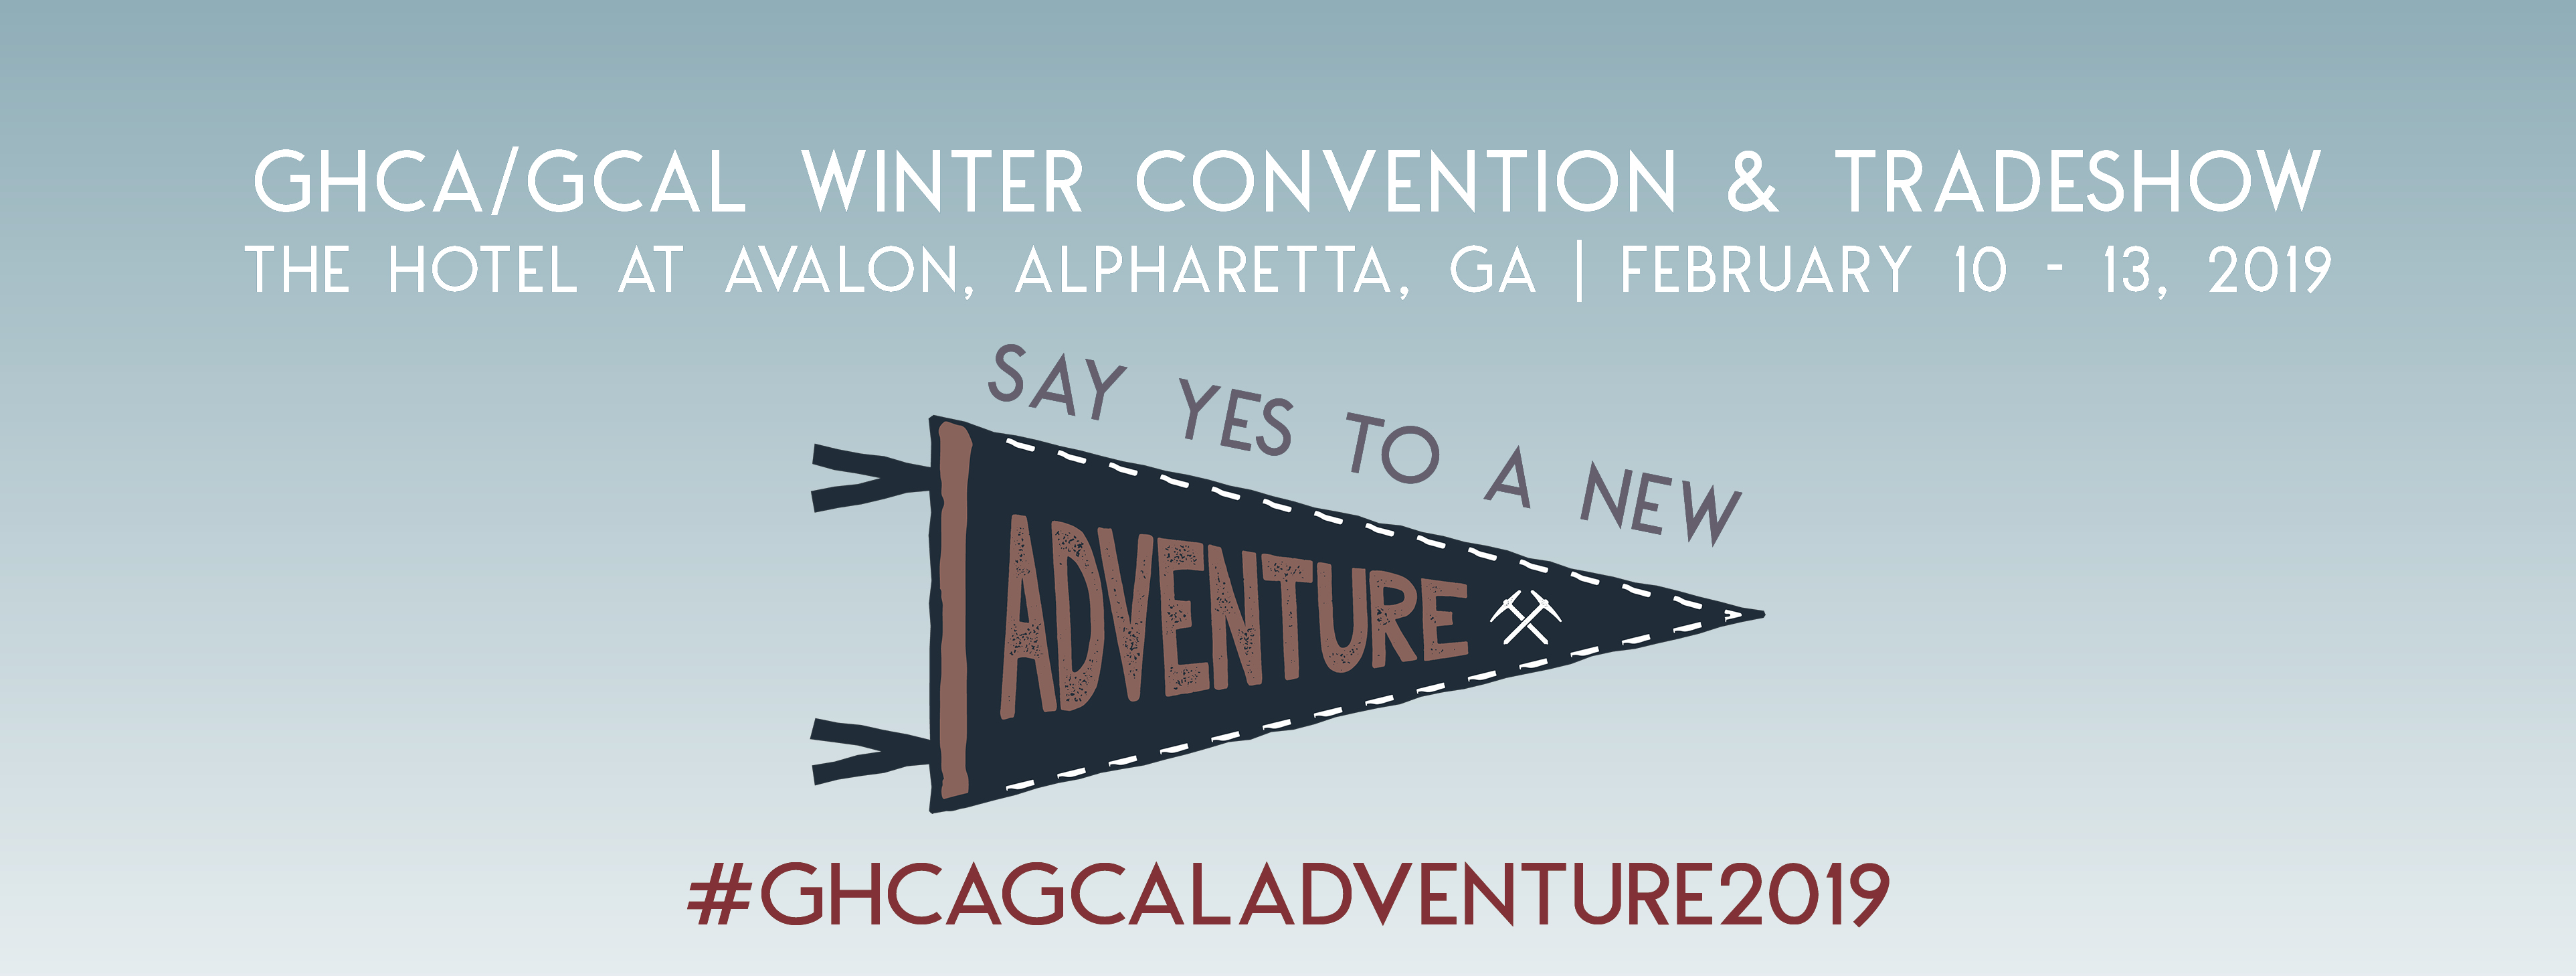 2019 GHCA/GCAL Winter Convention